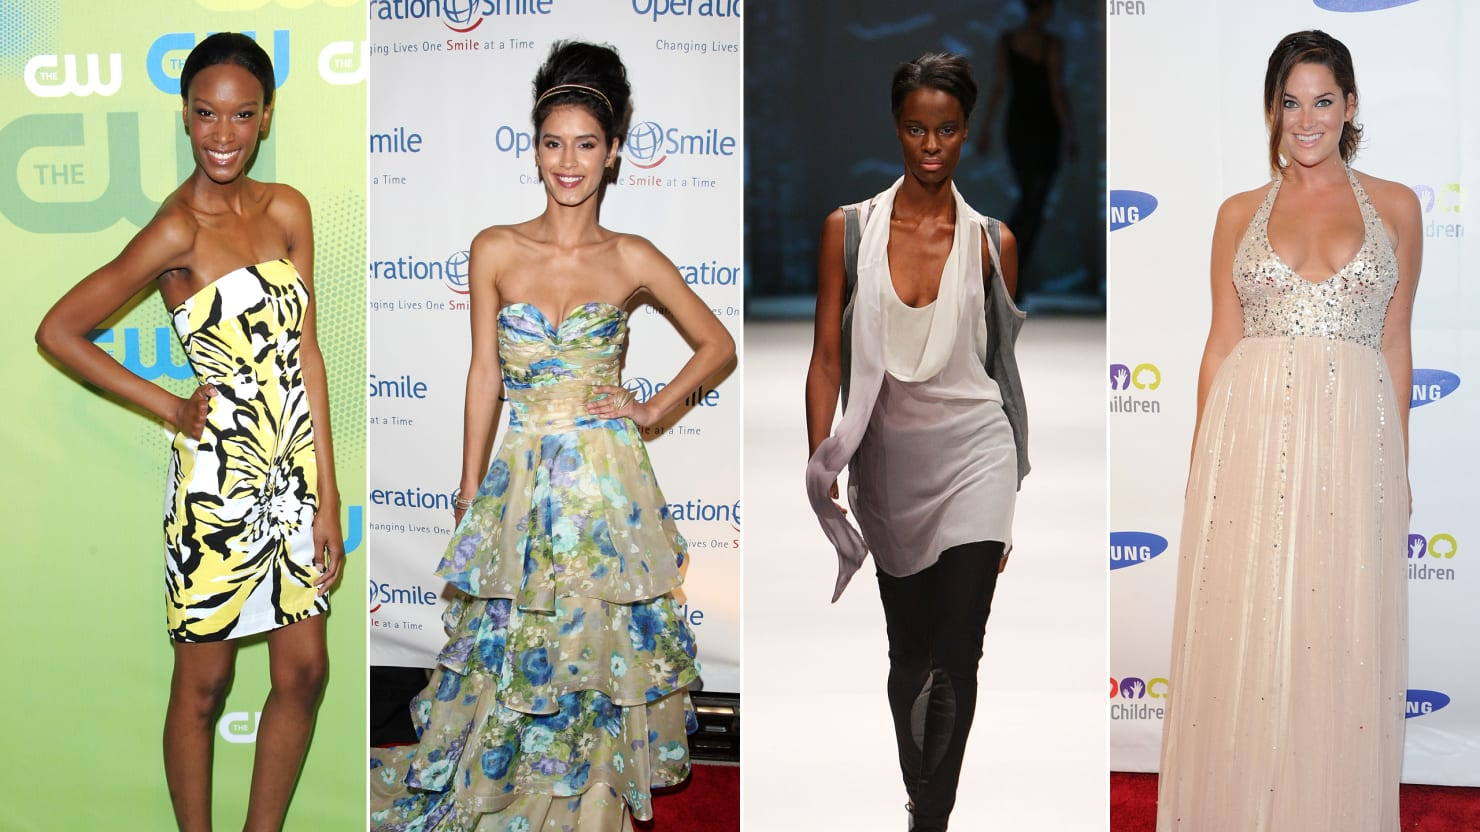 'America's Next Top Model' Winners : Where Are They Now? (PHOTOS)